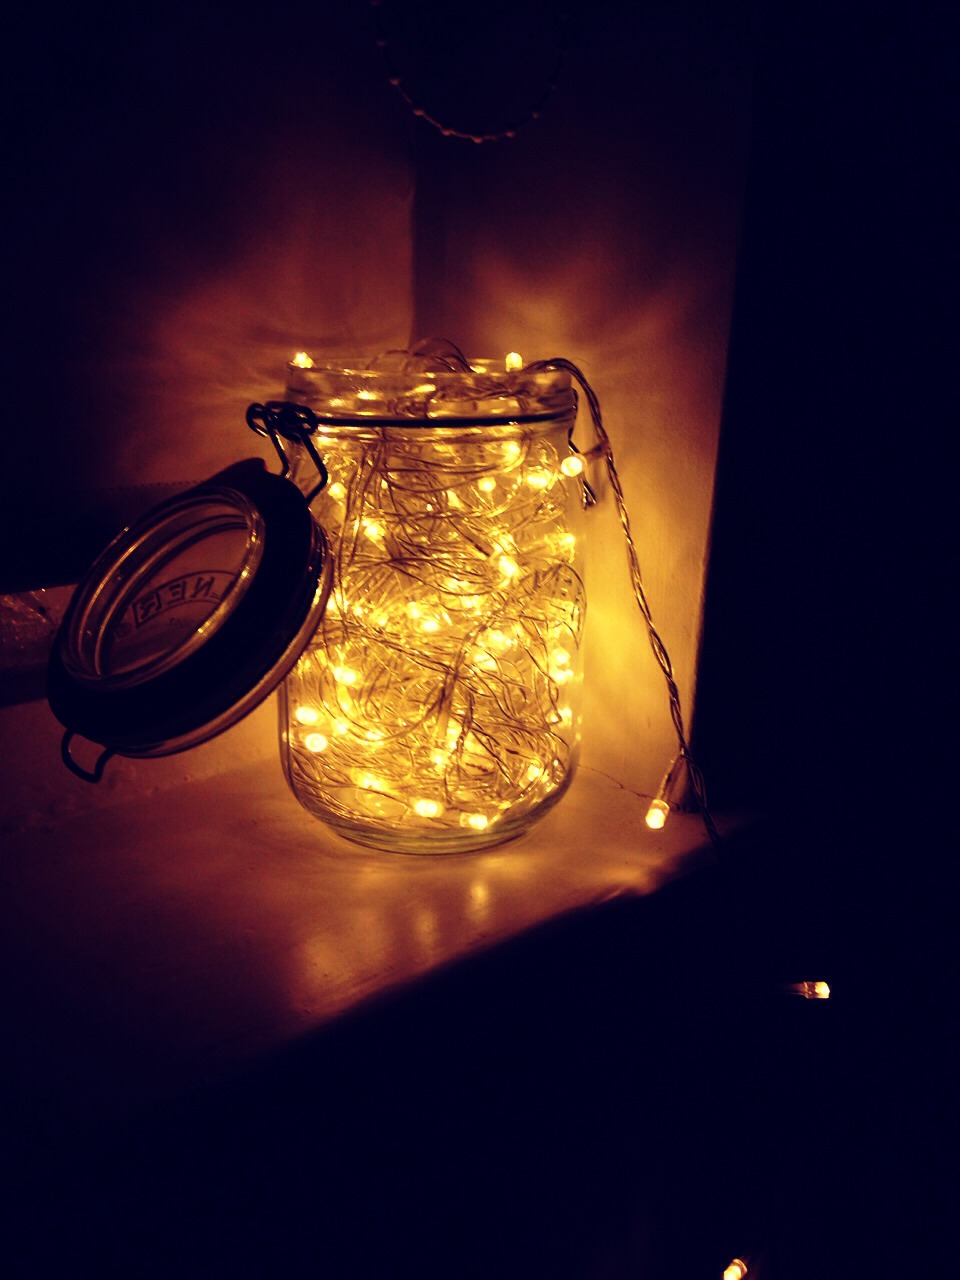 Some fairy lights are always a popular option for adding a delicate touch to a bedroom- hang up on your walls or put in a jar, both look fab!